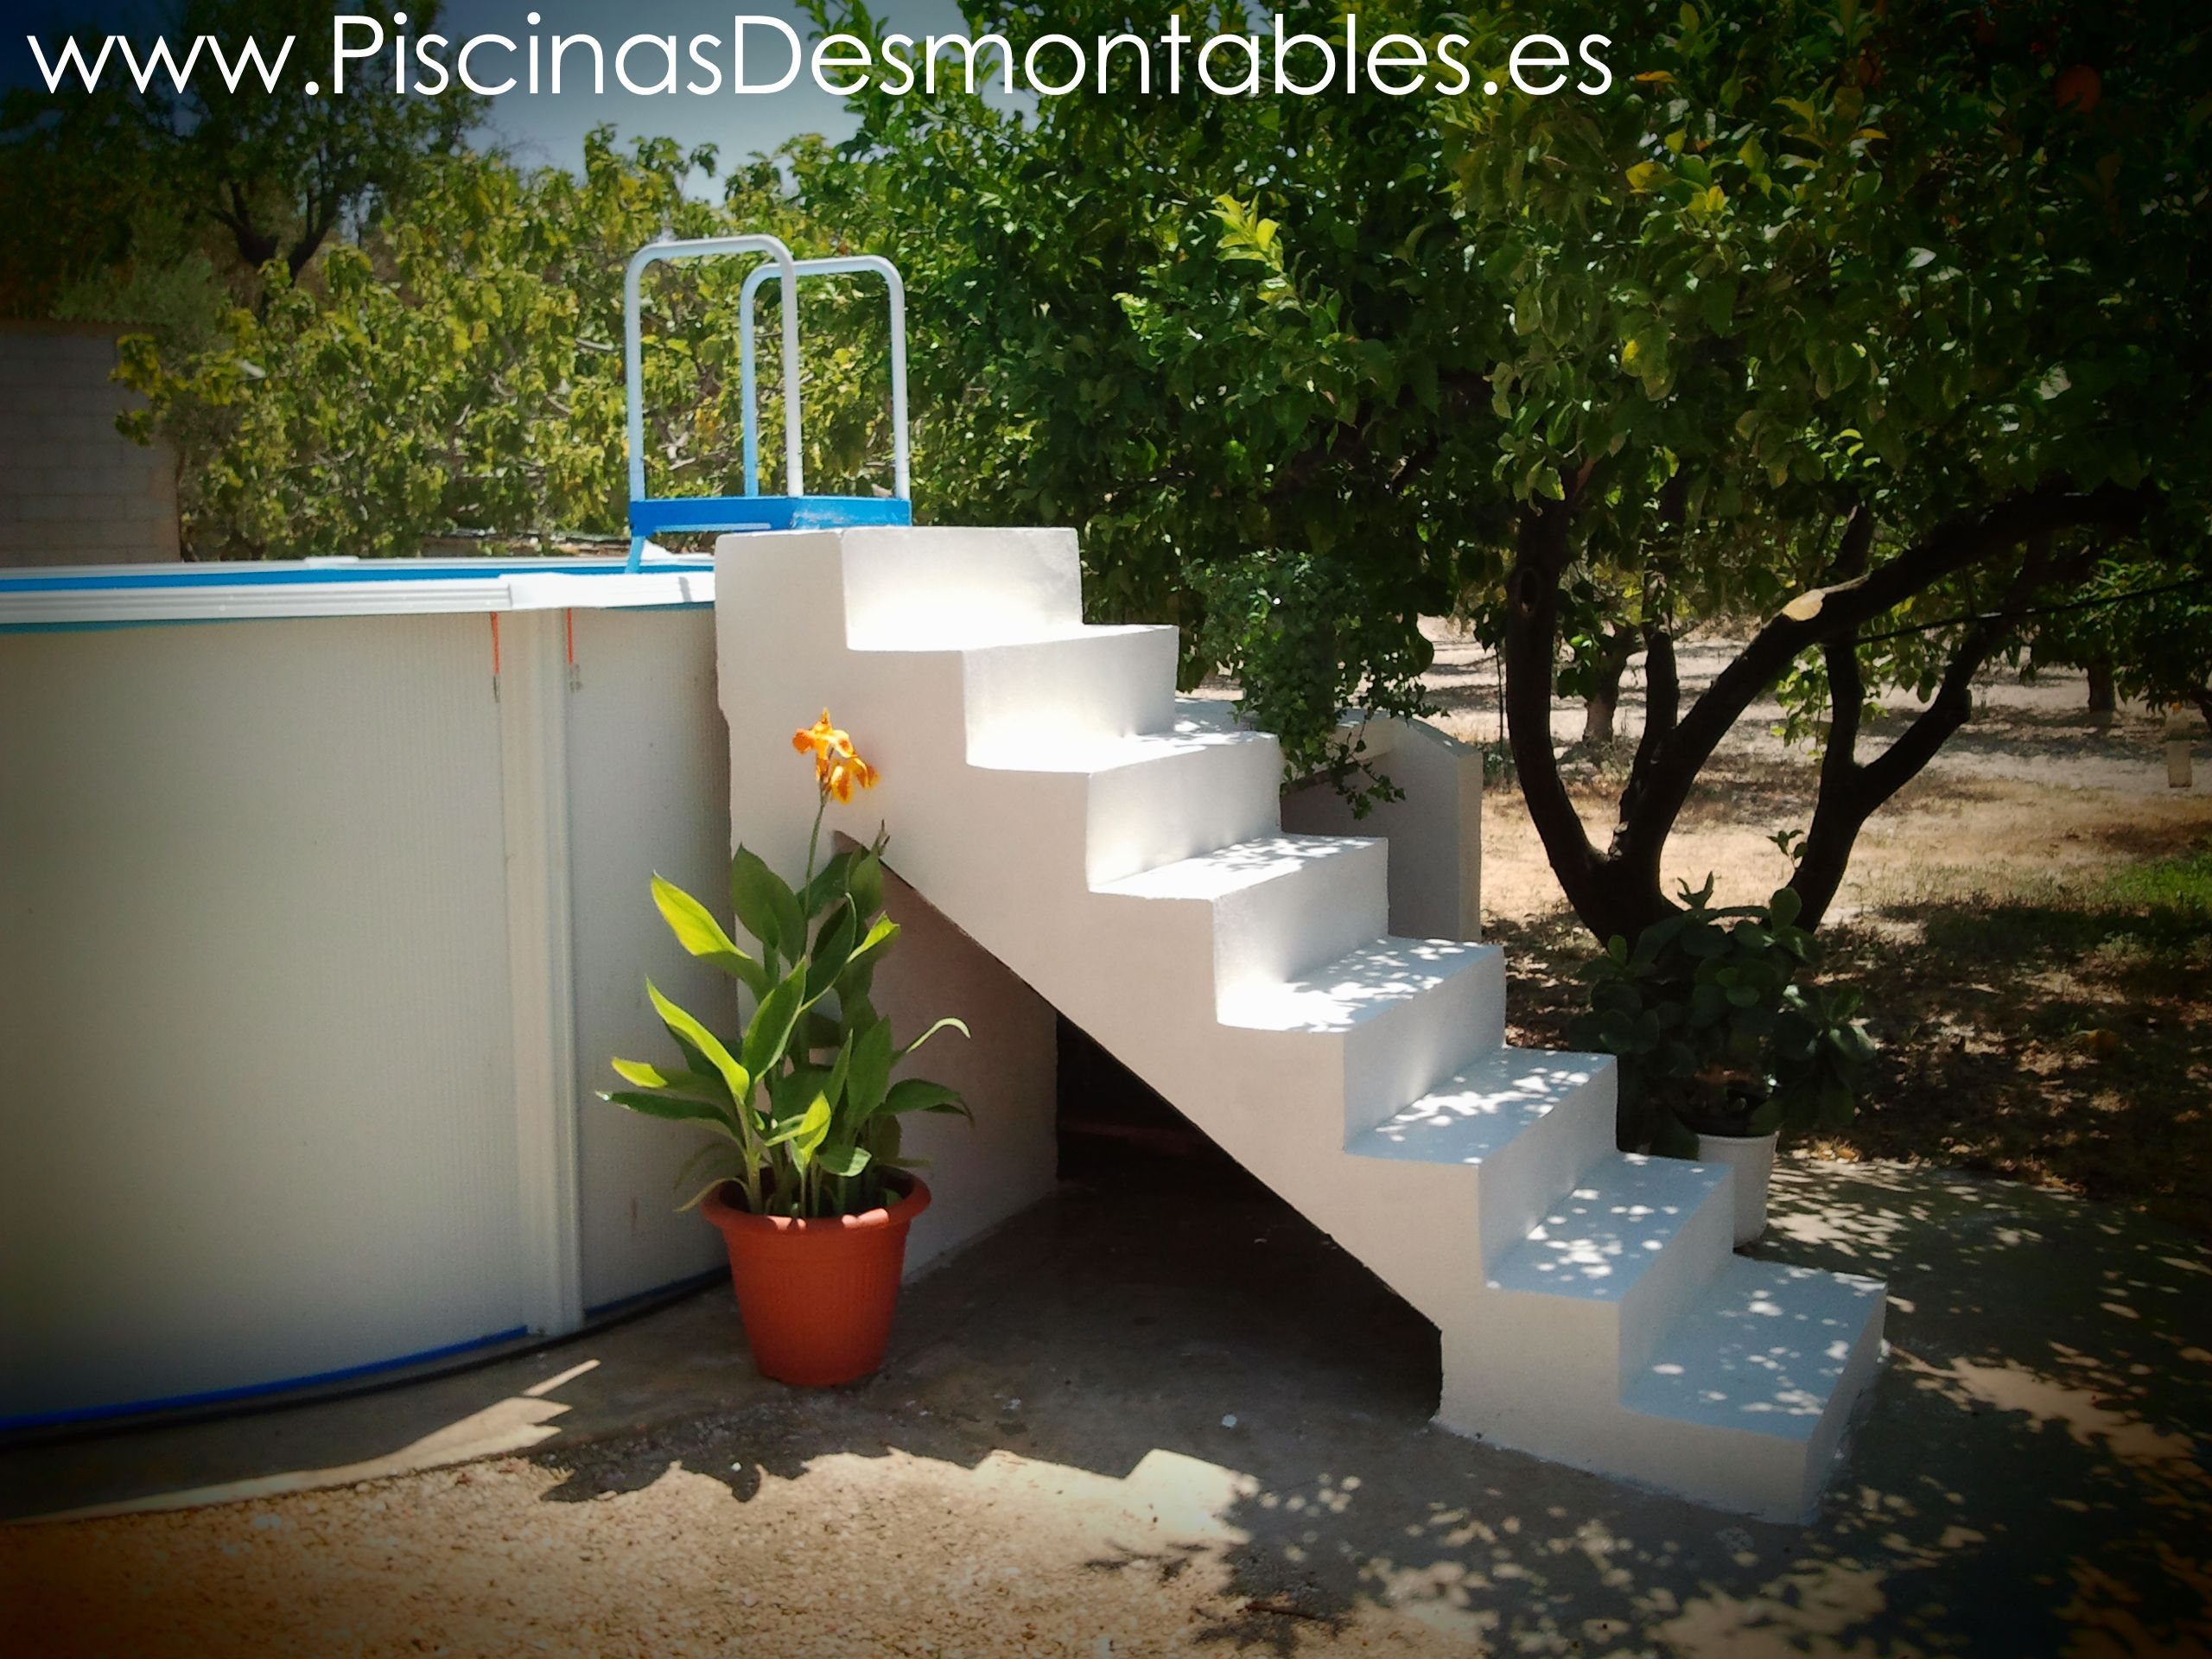 Escalera de obra adaptada a una piscina desmontable toi for Escaleras para piscinas desmontables